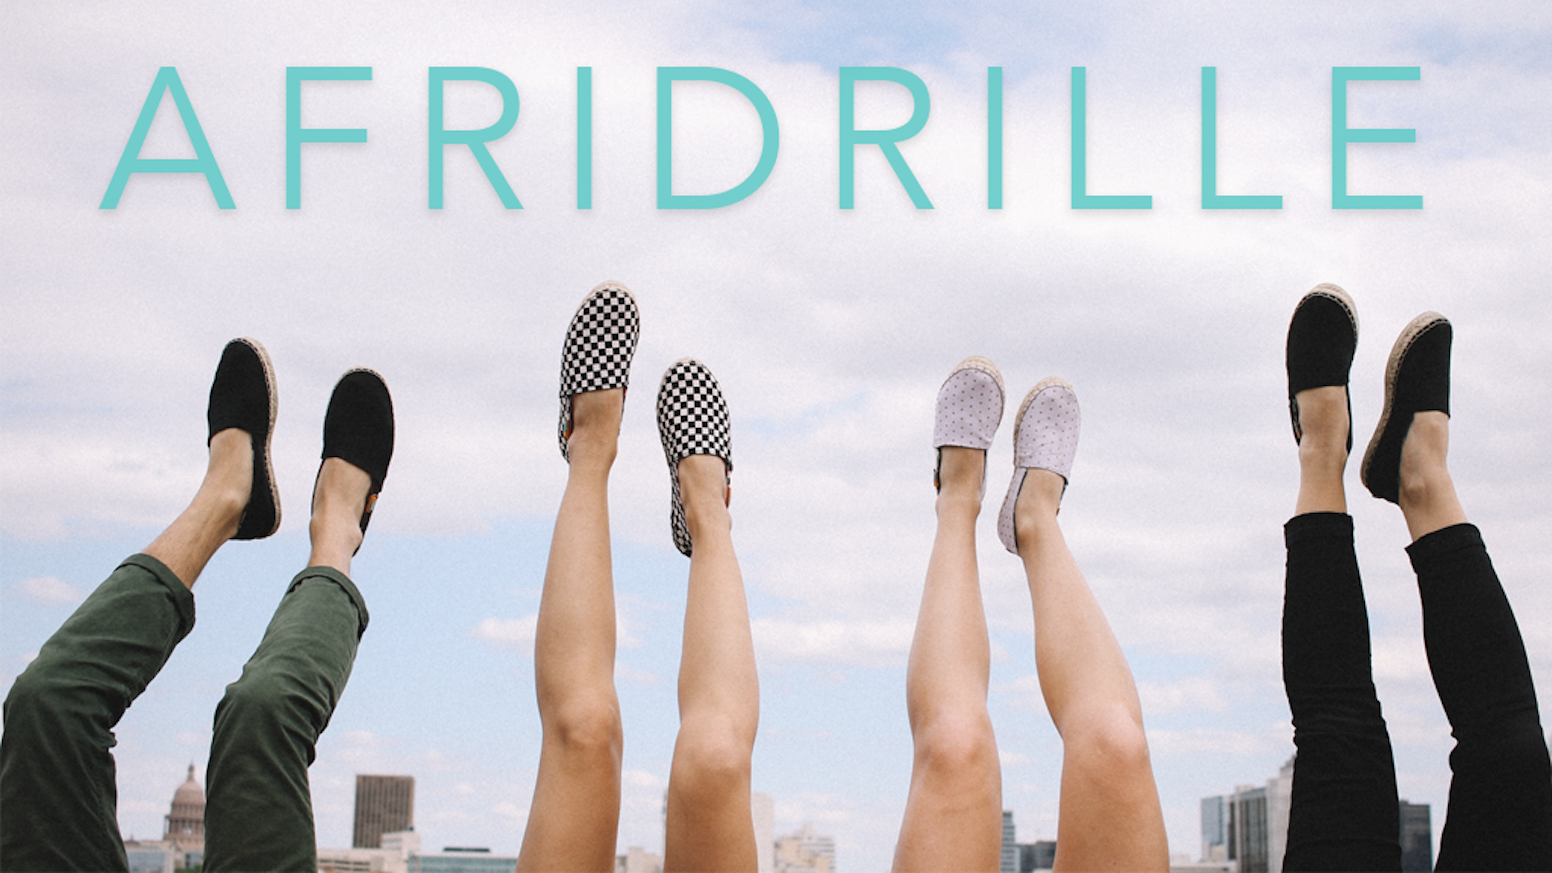 The first fully-customizable espadrille shoe, designed in Austin and handmade in Kenya.  CLASSIC AFRIDRILLES NOW AVAILABLE: www.ubuntu.life